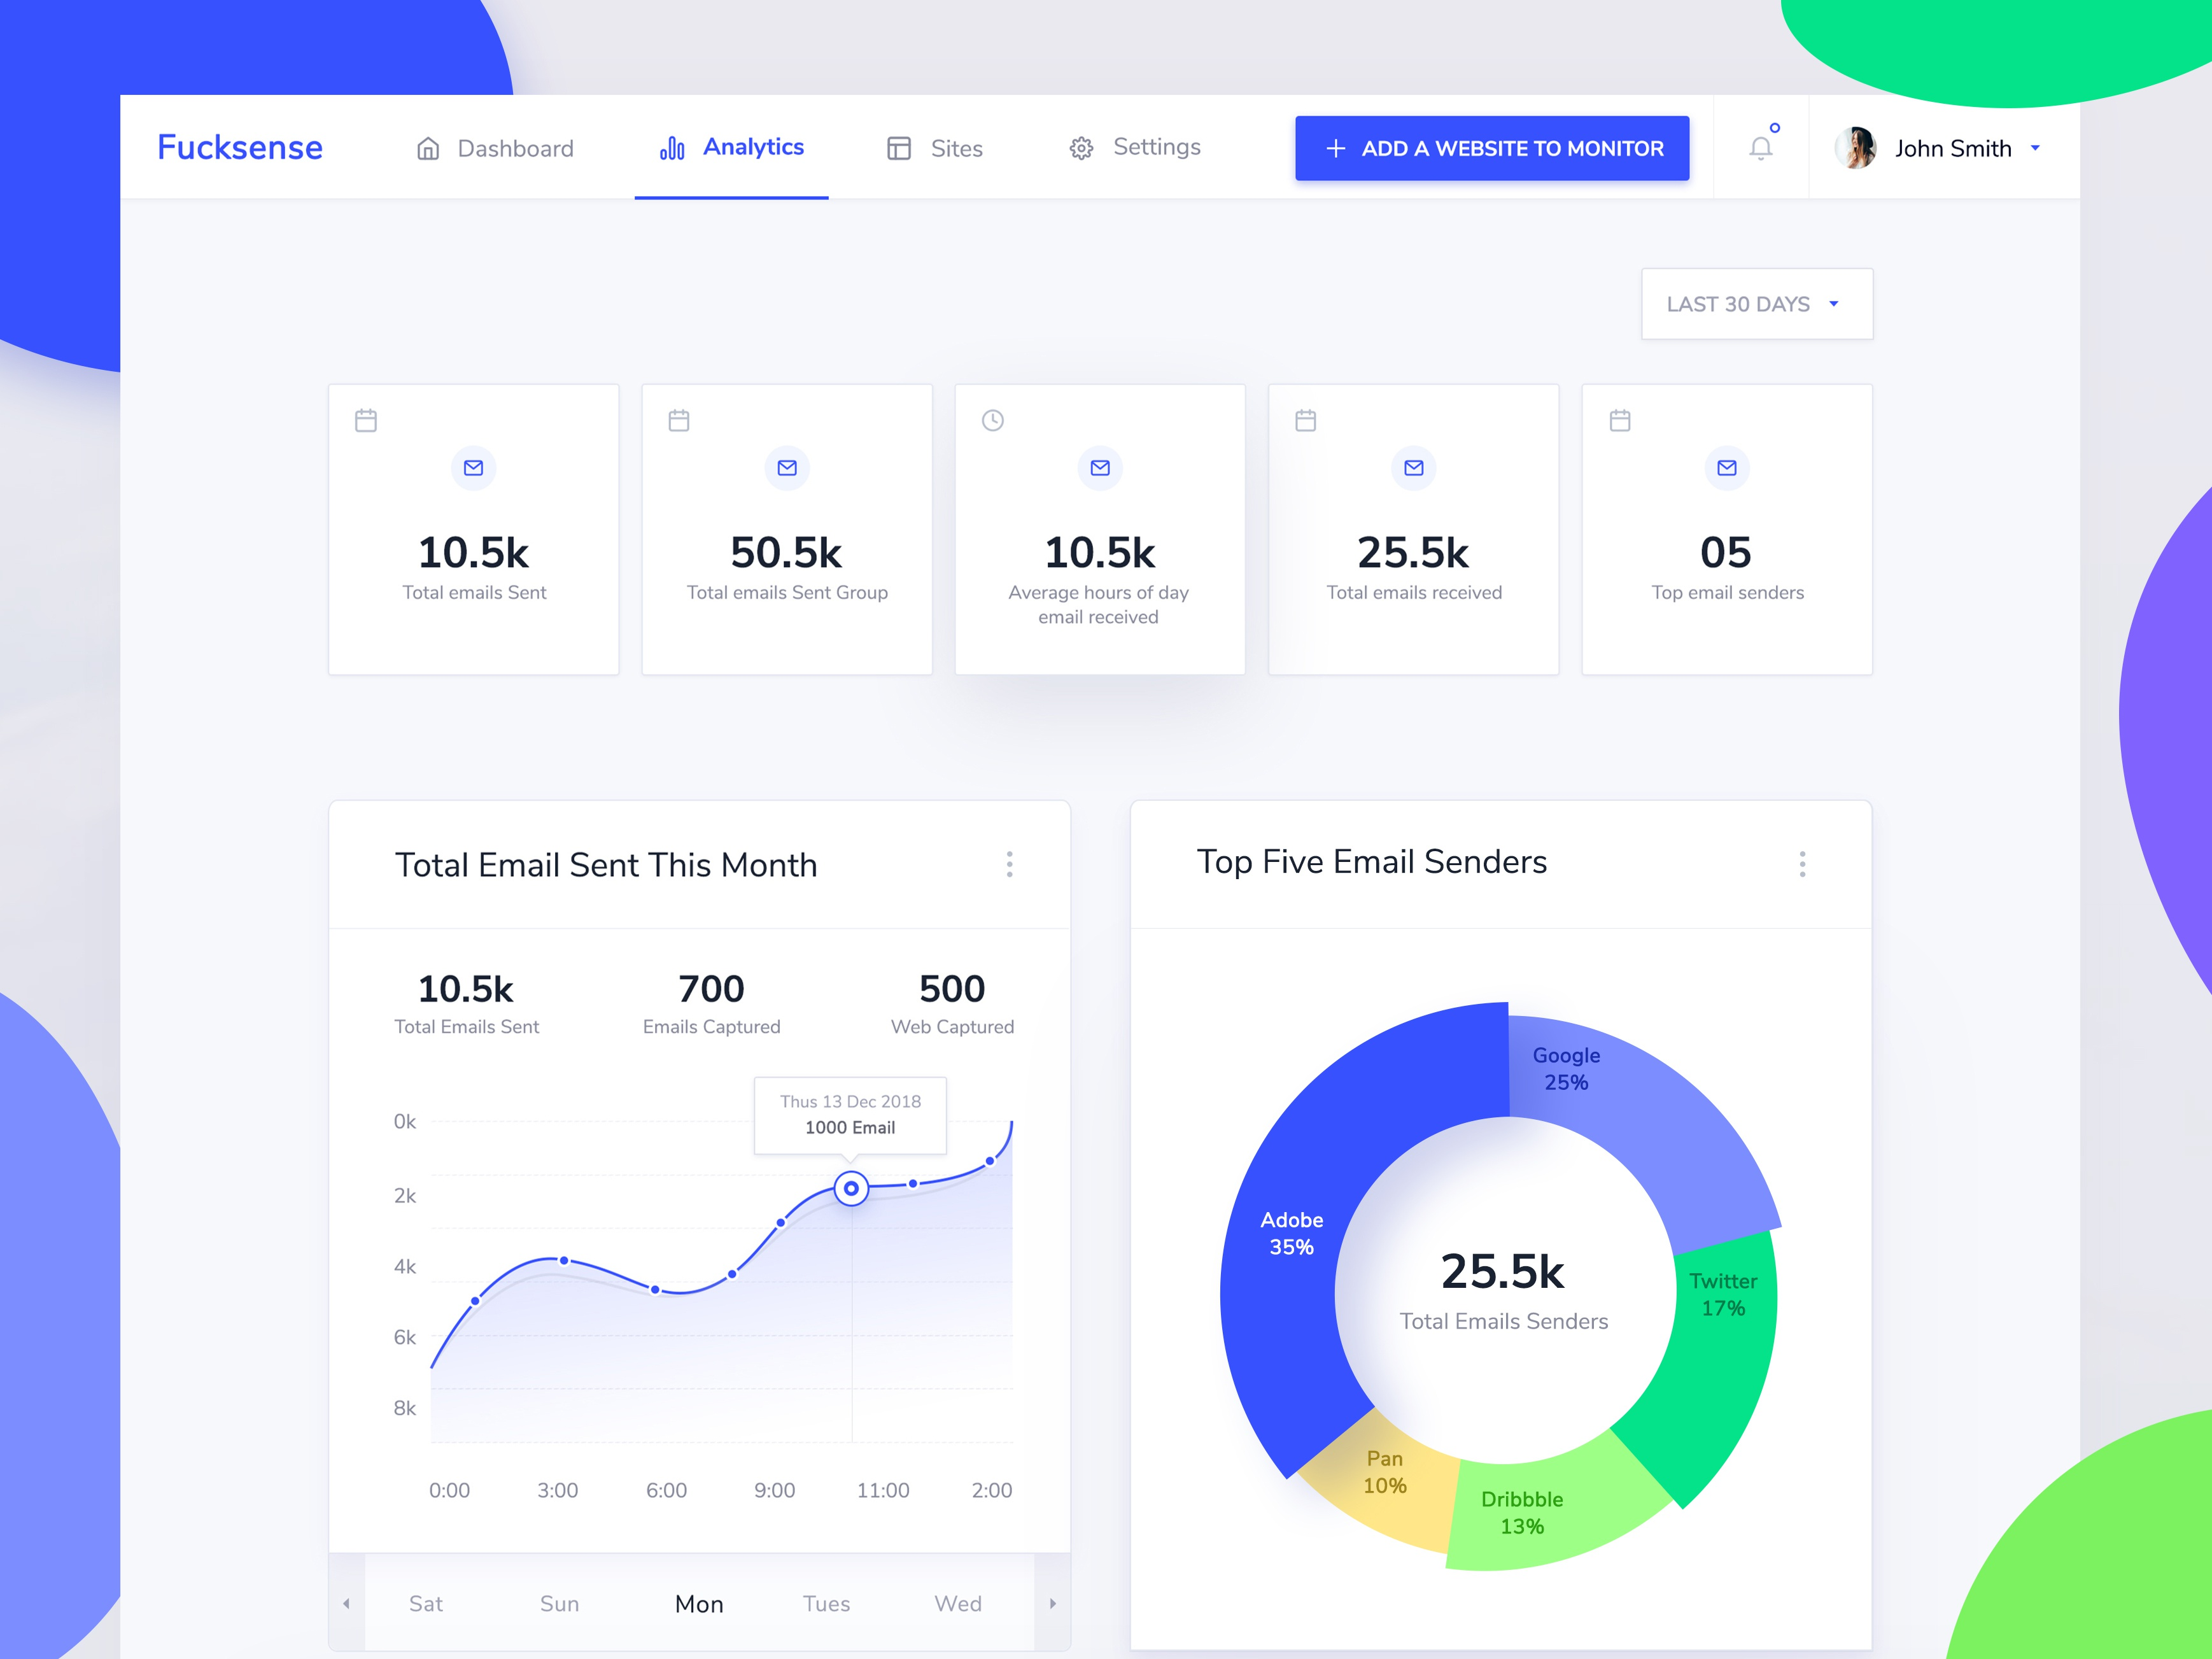 Fcuksense analytices page design